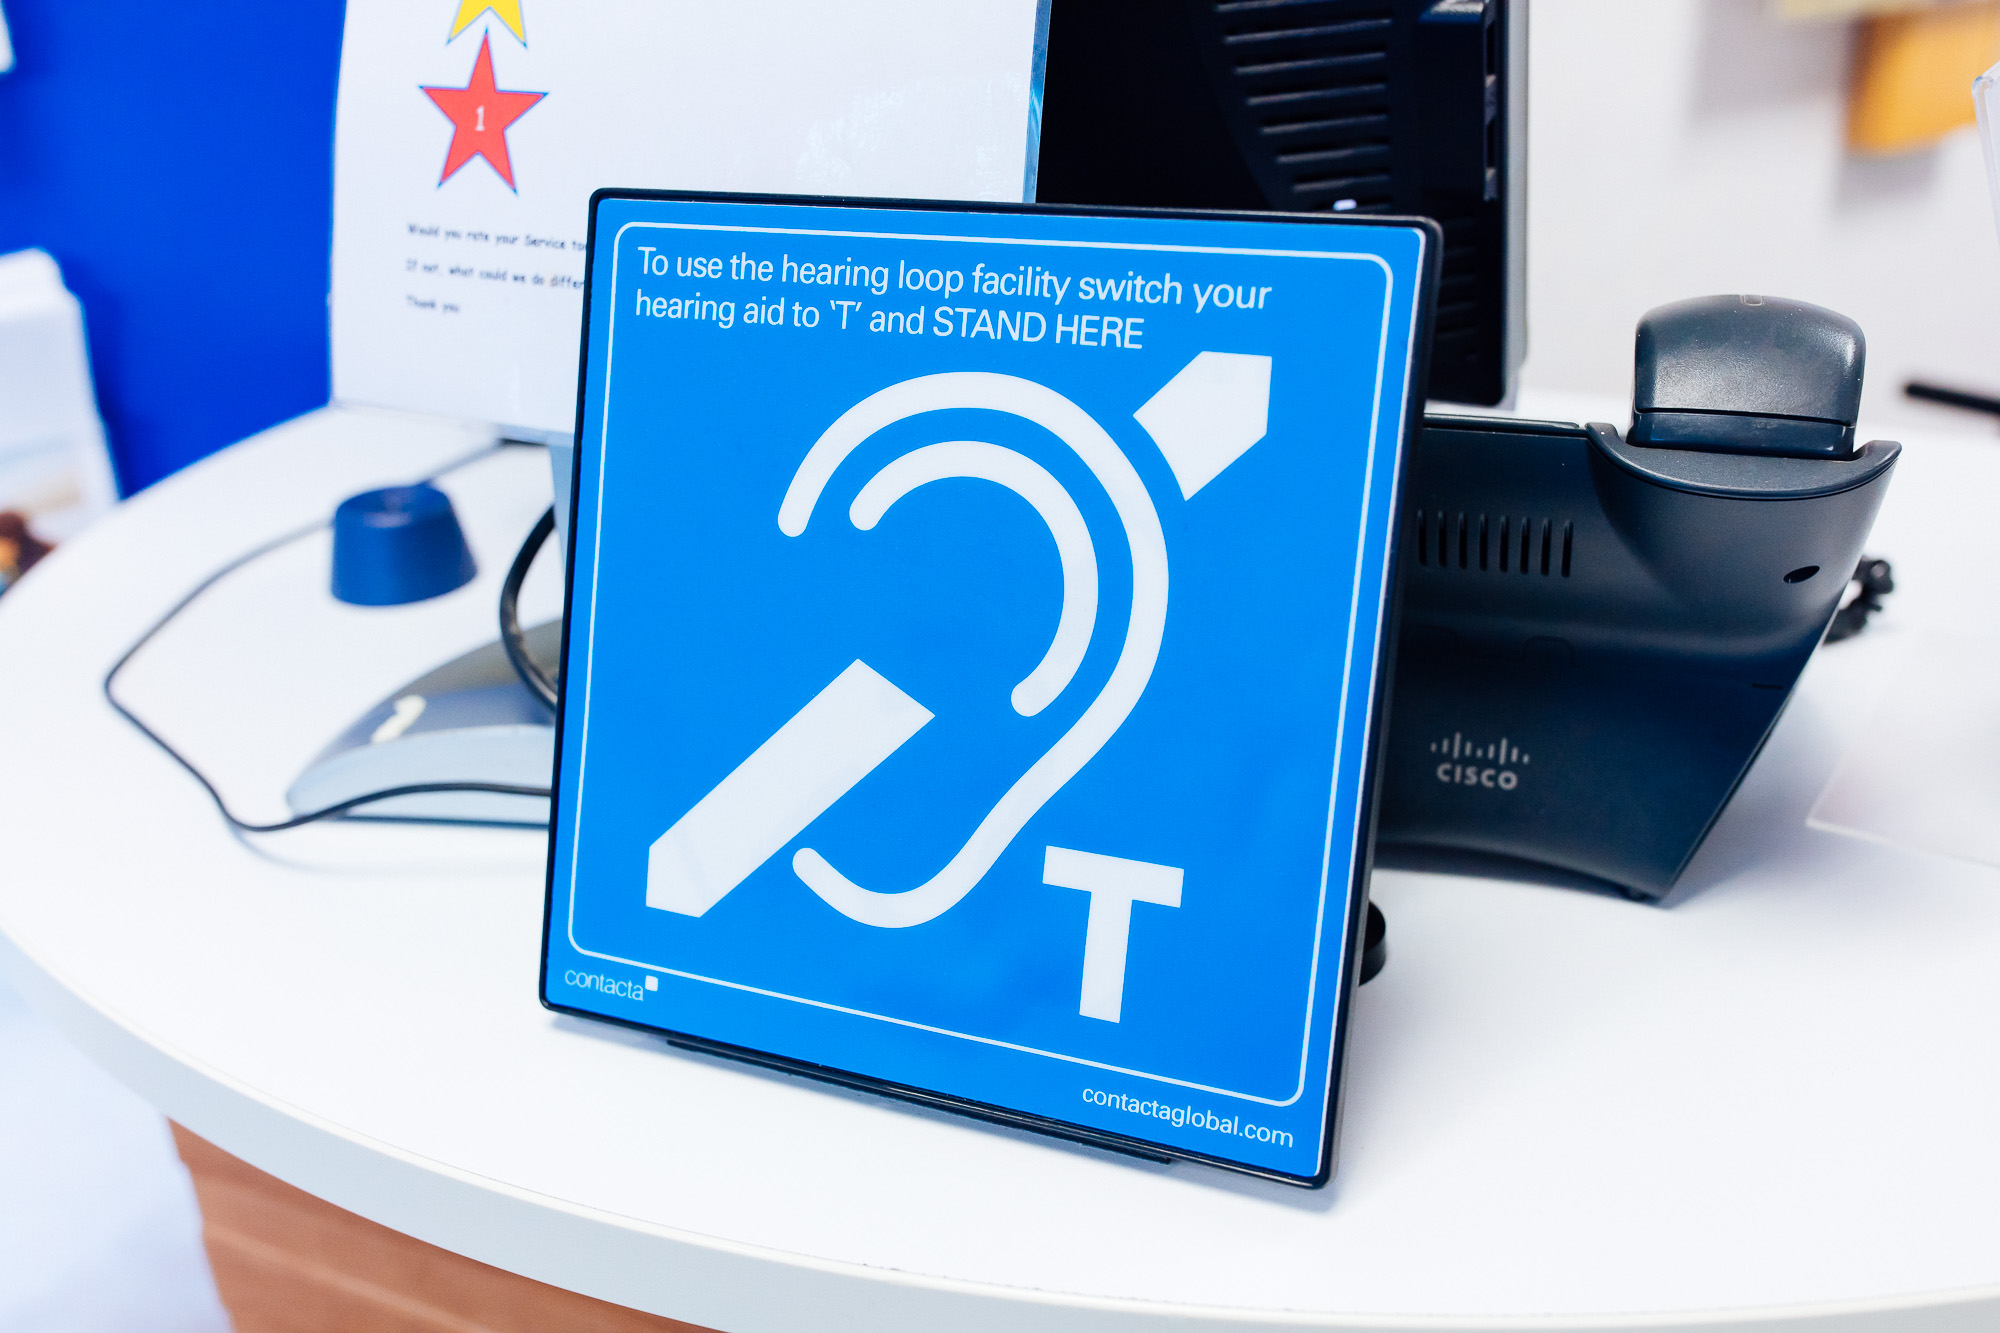 Contacta's hearing loop sign with built in aerial